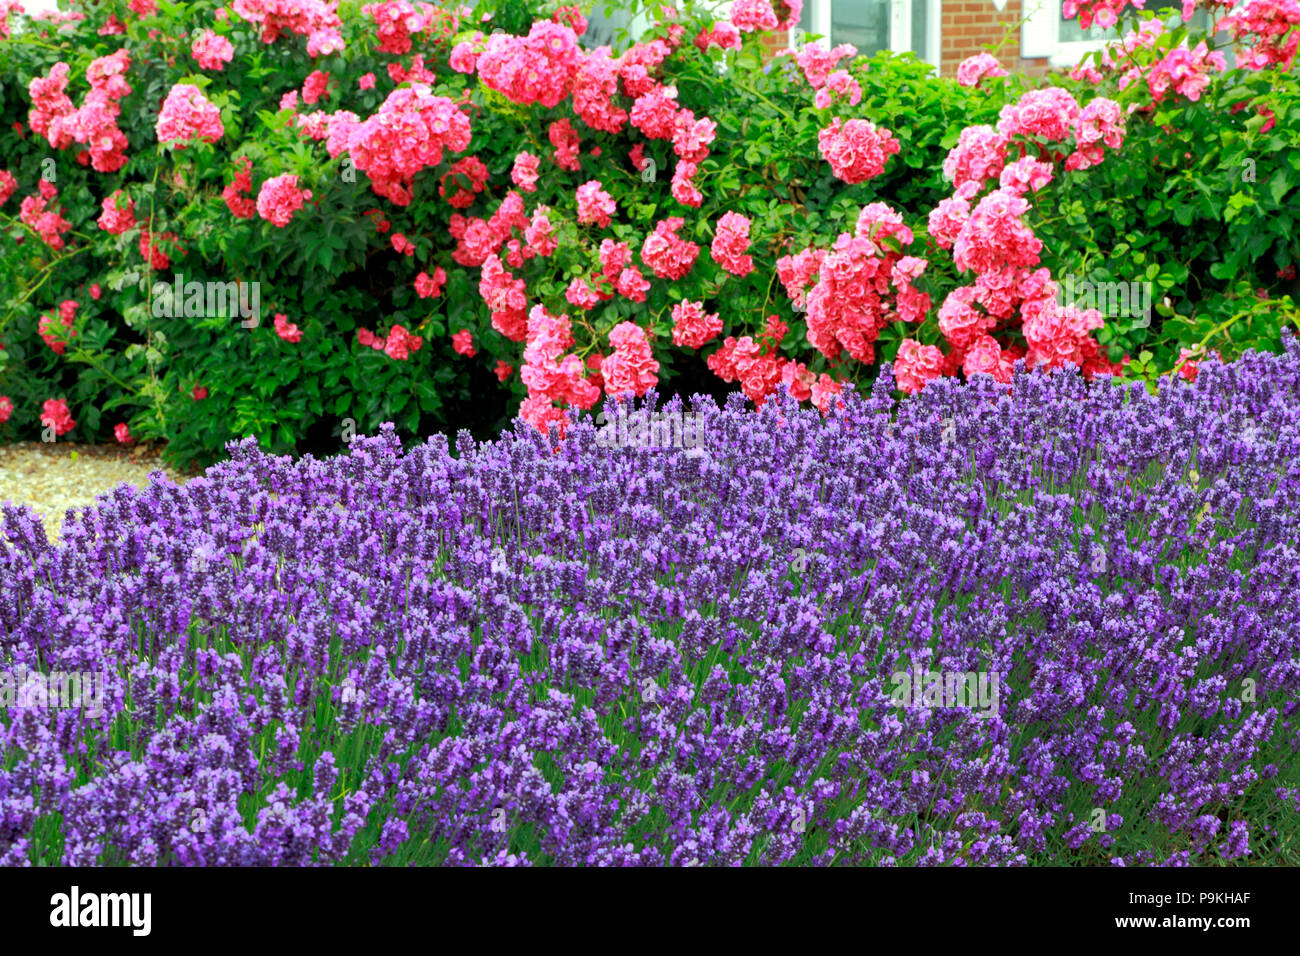 Blue, purple, lavender, pink Roses, front garden, wall, Lavandula, Rosa - Stock Image